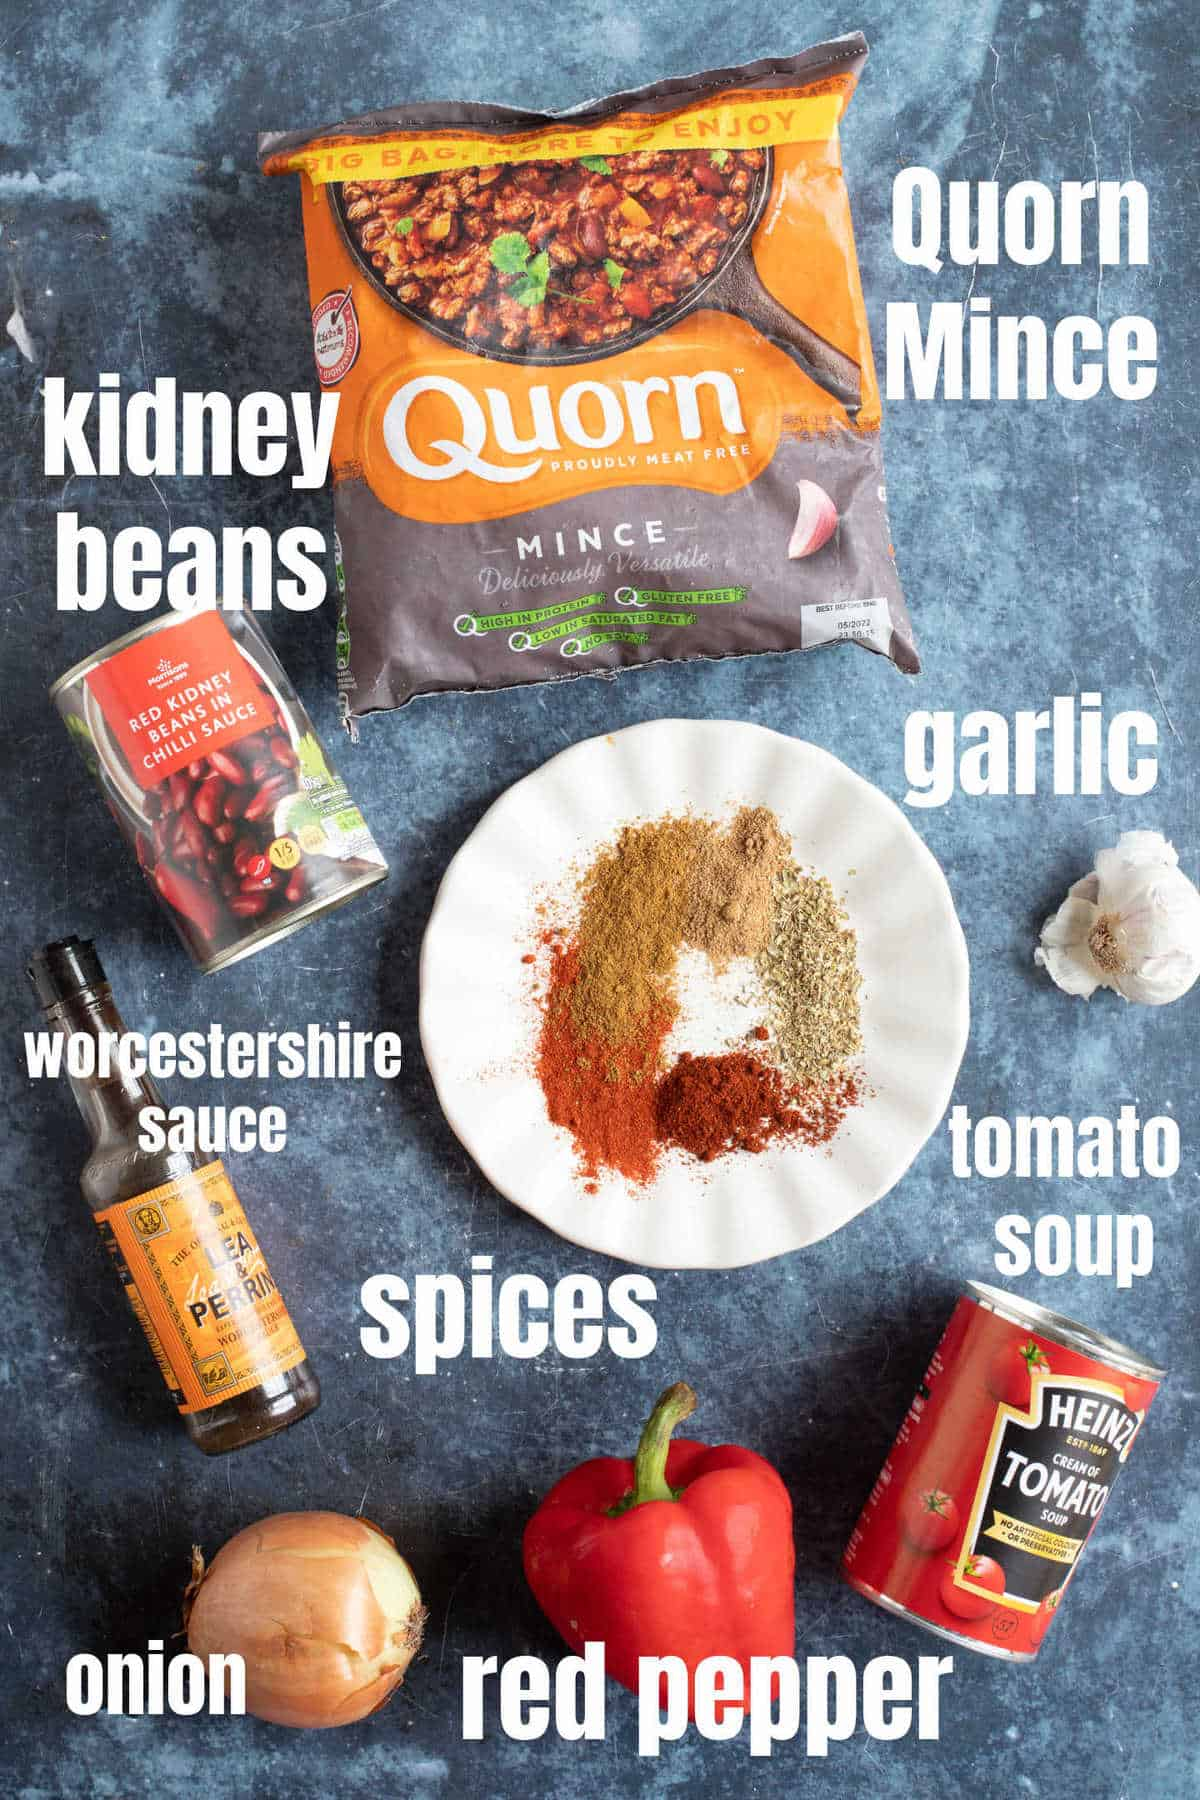 Ingredients for Quorn chilli con carne.